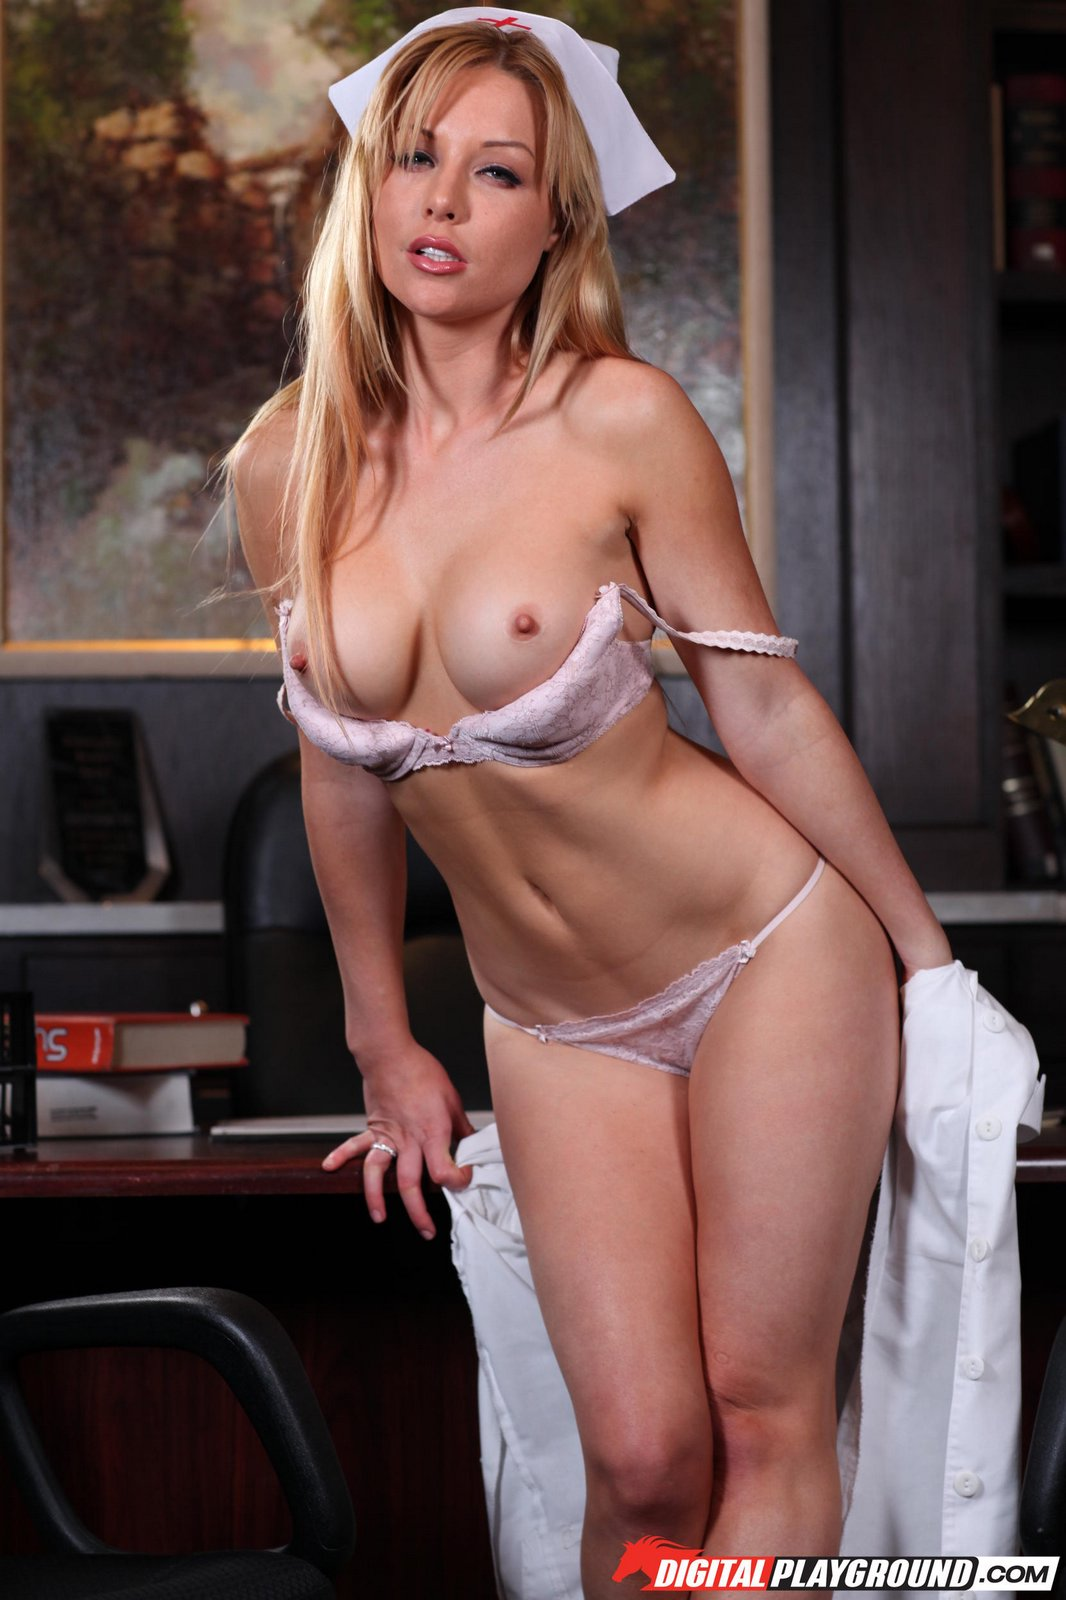 Beautiful nurse Kayden Kross getting fucked - My Pornstar Book